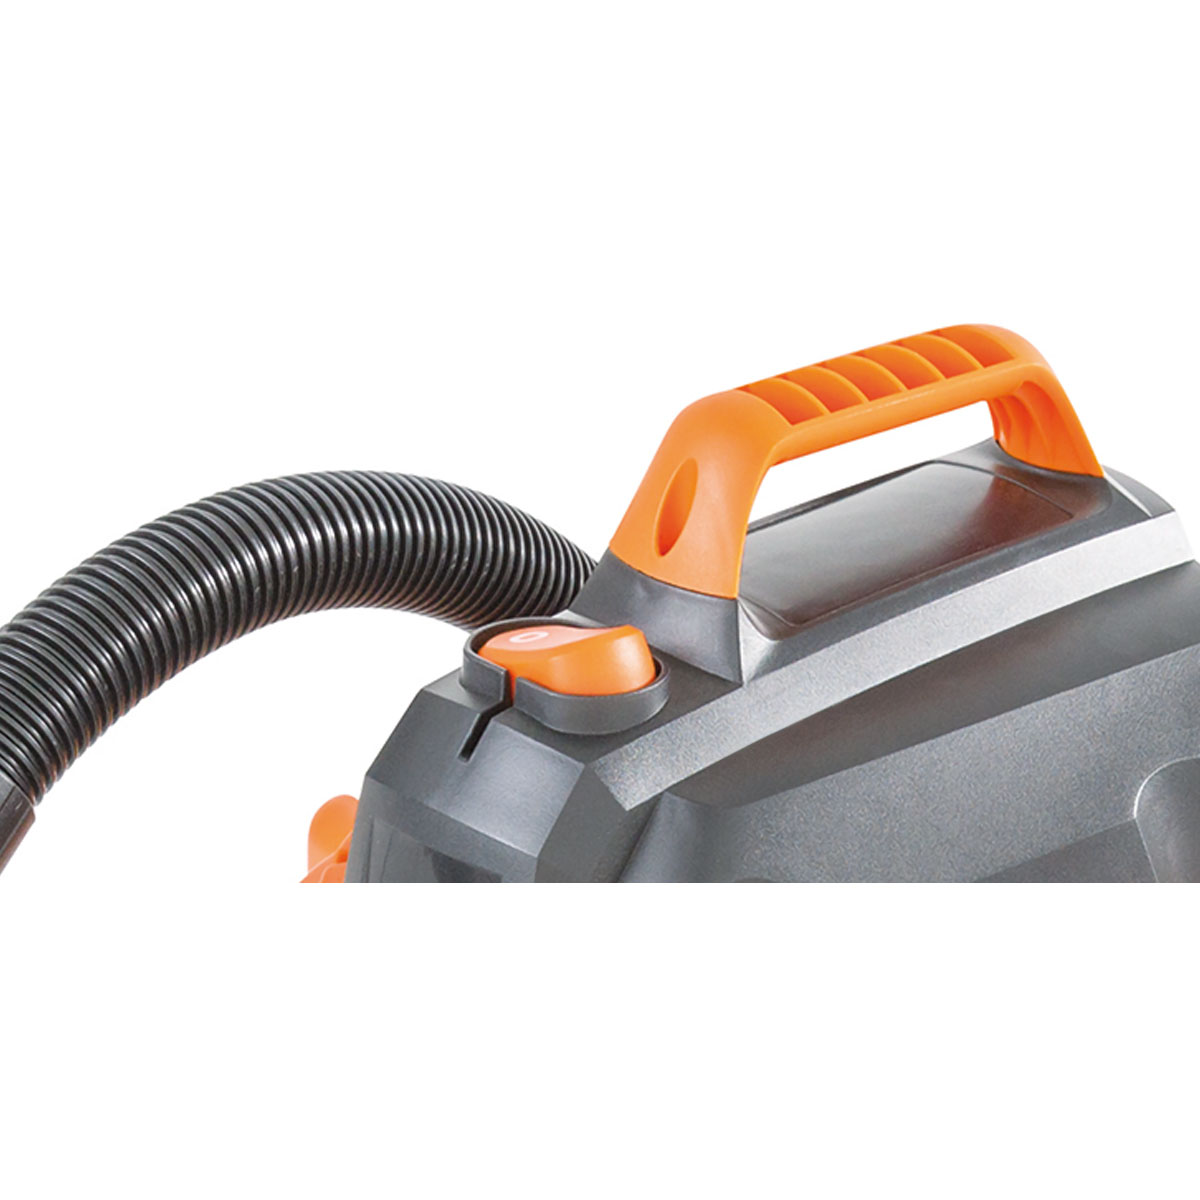 Small vacuum vax small vacuum cleaner vax small vacuum cleaner pictures fandeluxe Gallery